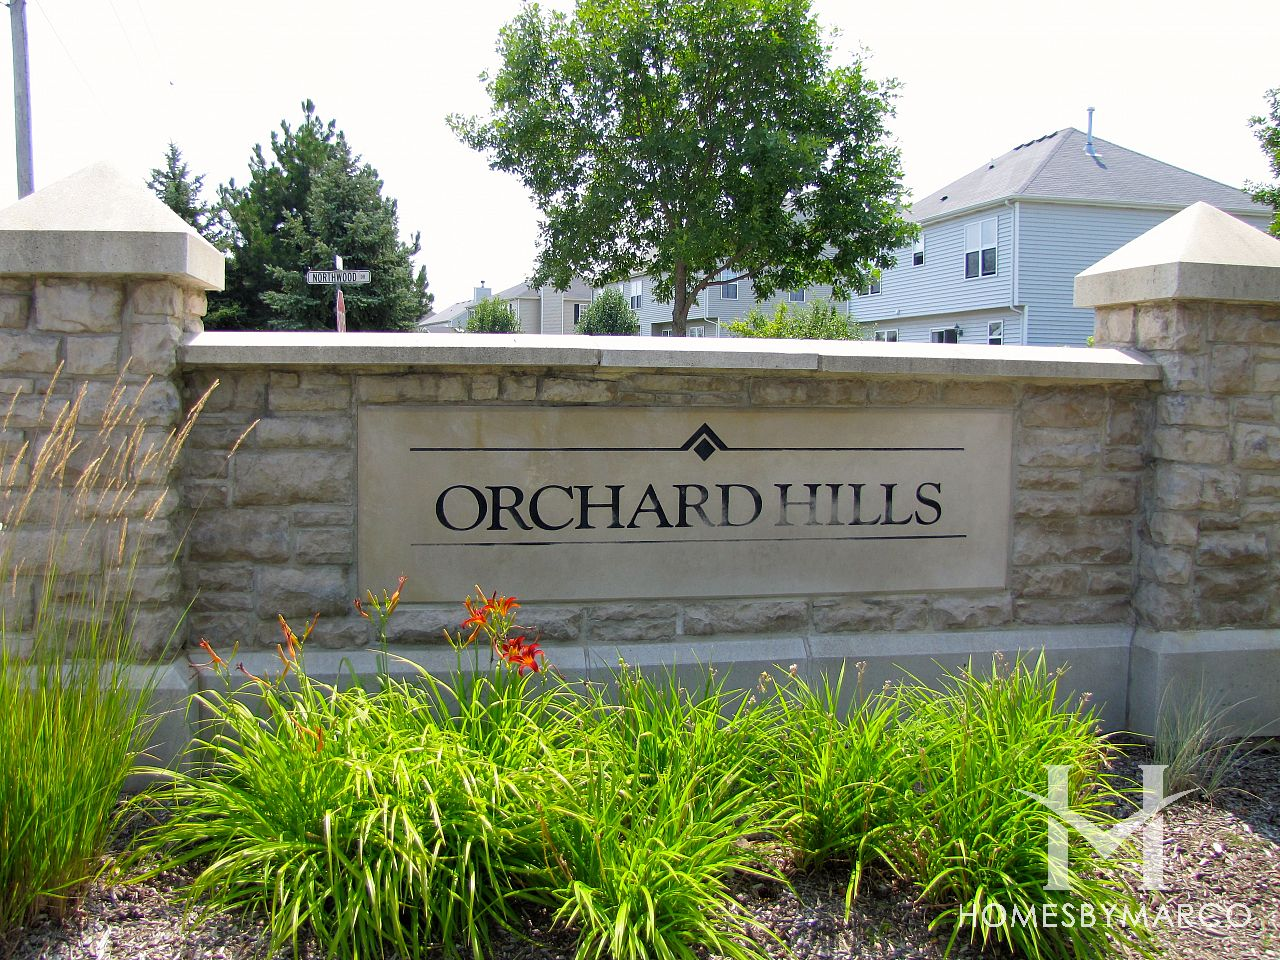 orchard hill singles For sale: 4 bed, 6 bath ∙ 7110 sq ft ∙ 7 orchard hill dr, westborough, ma 01581 ∙ $1,325,000 ∙ mls# 72292733 ∙ as you make your way around the gorgeous grounds or throughout this luxuriously upda.